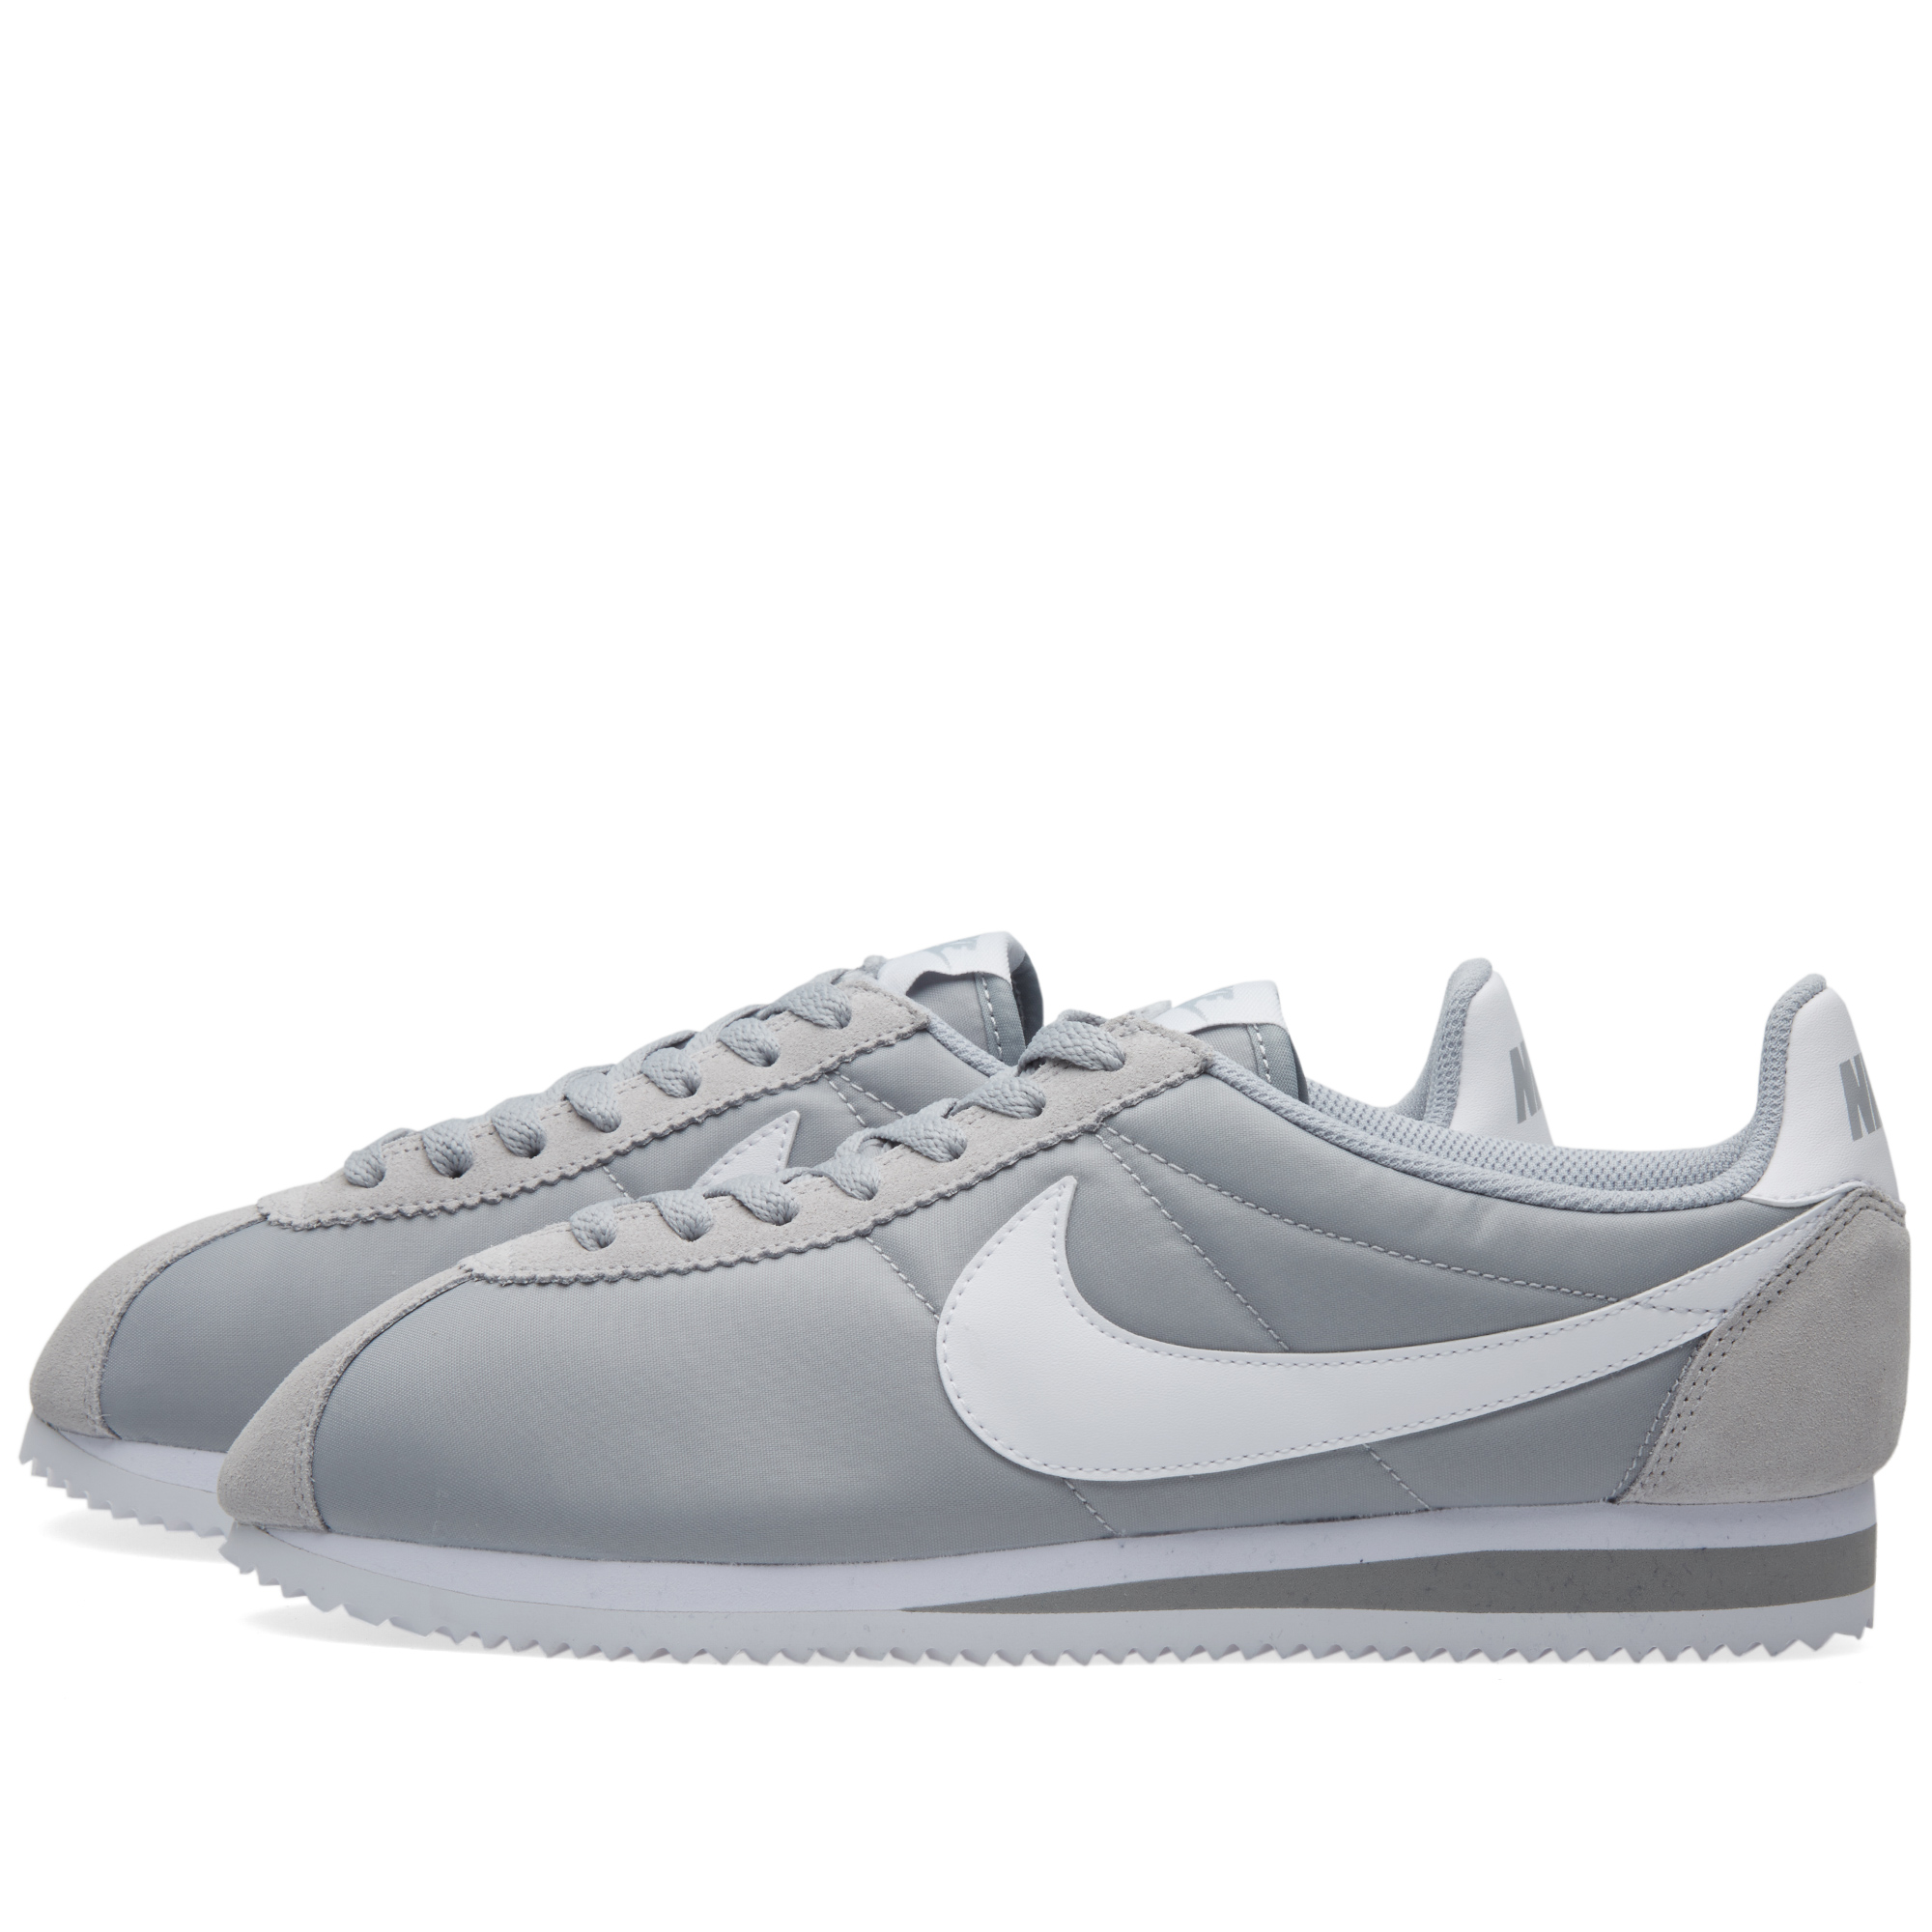 nike classic cortez wolf grey white. Black Bedroom Furniture Sets. Home Design Ideas